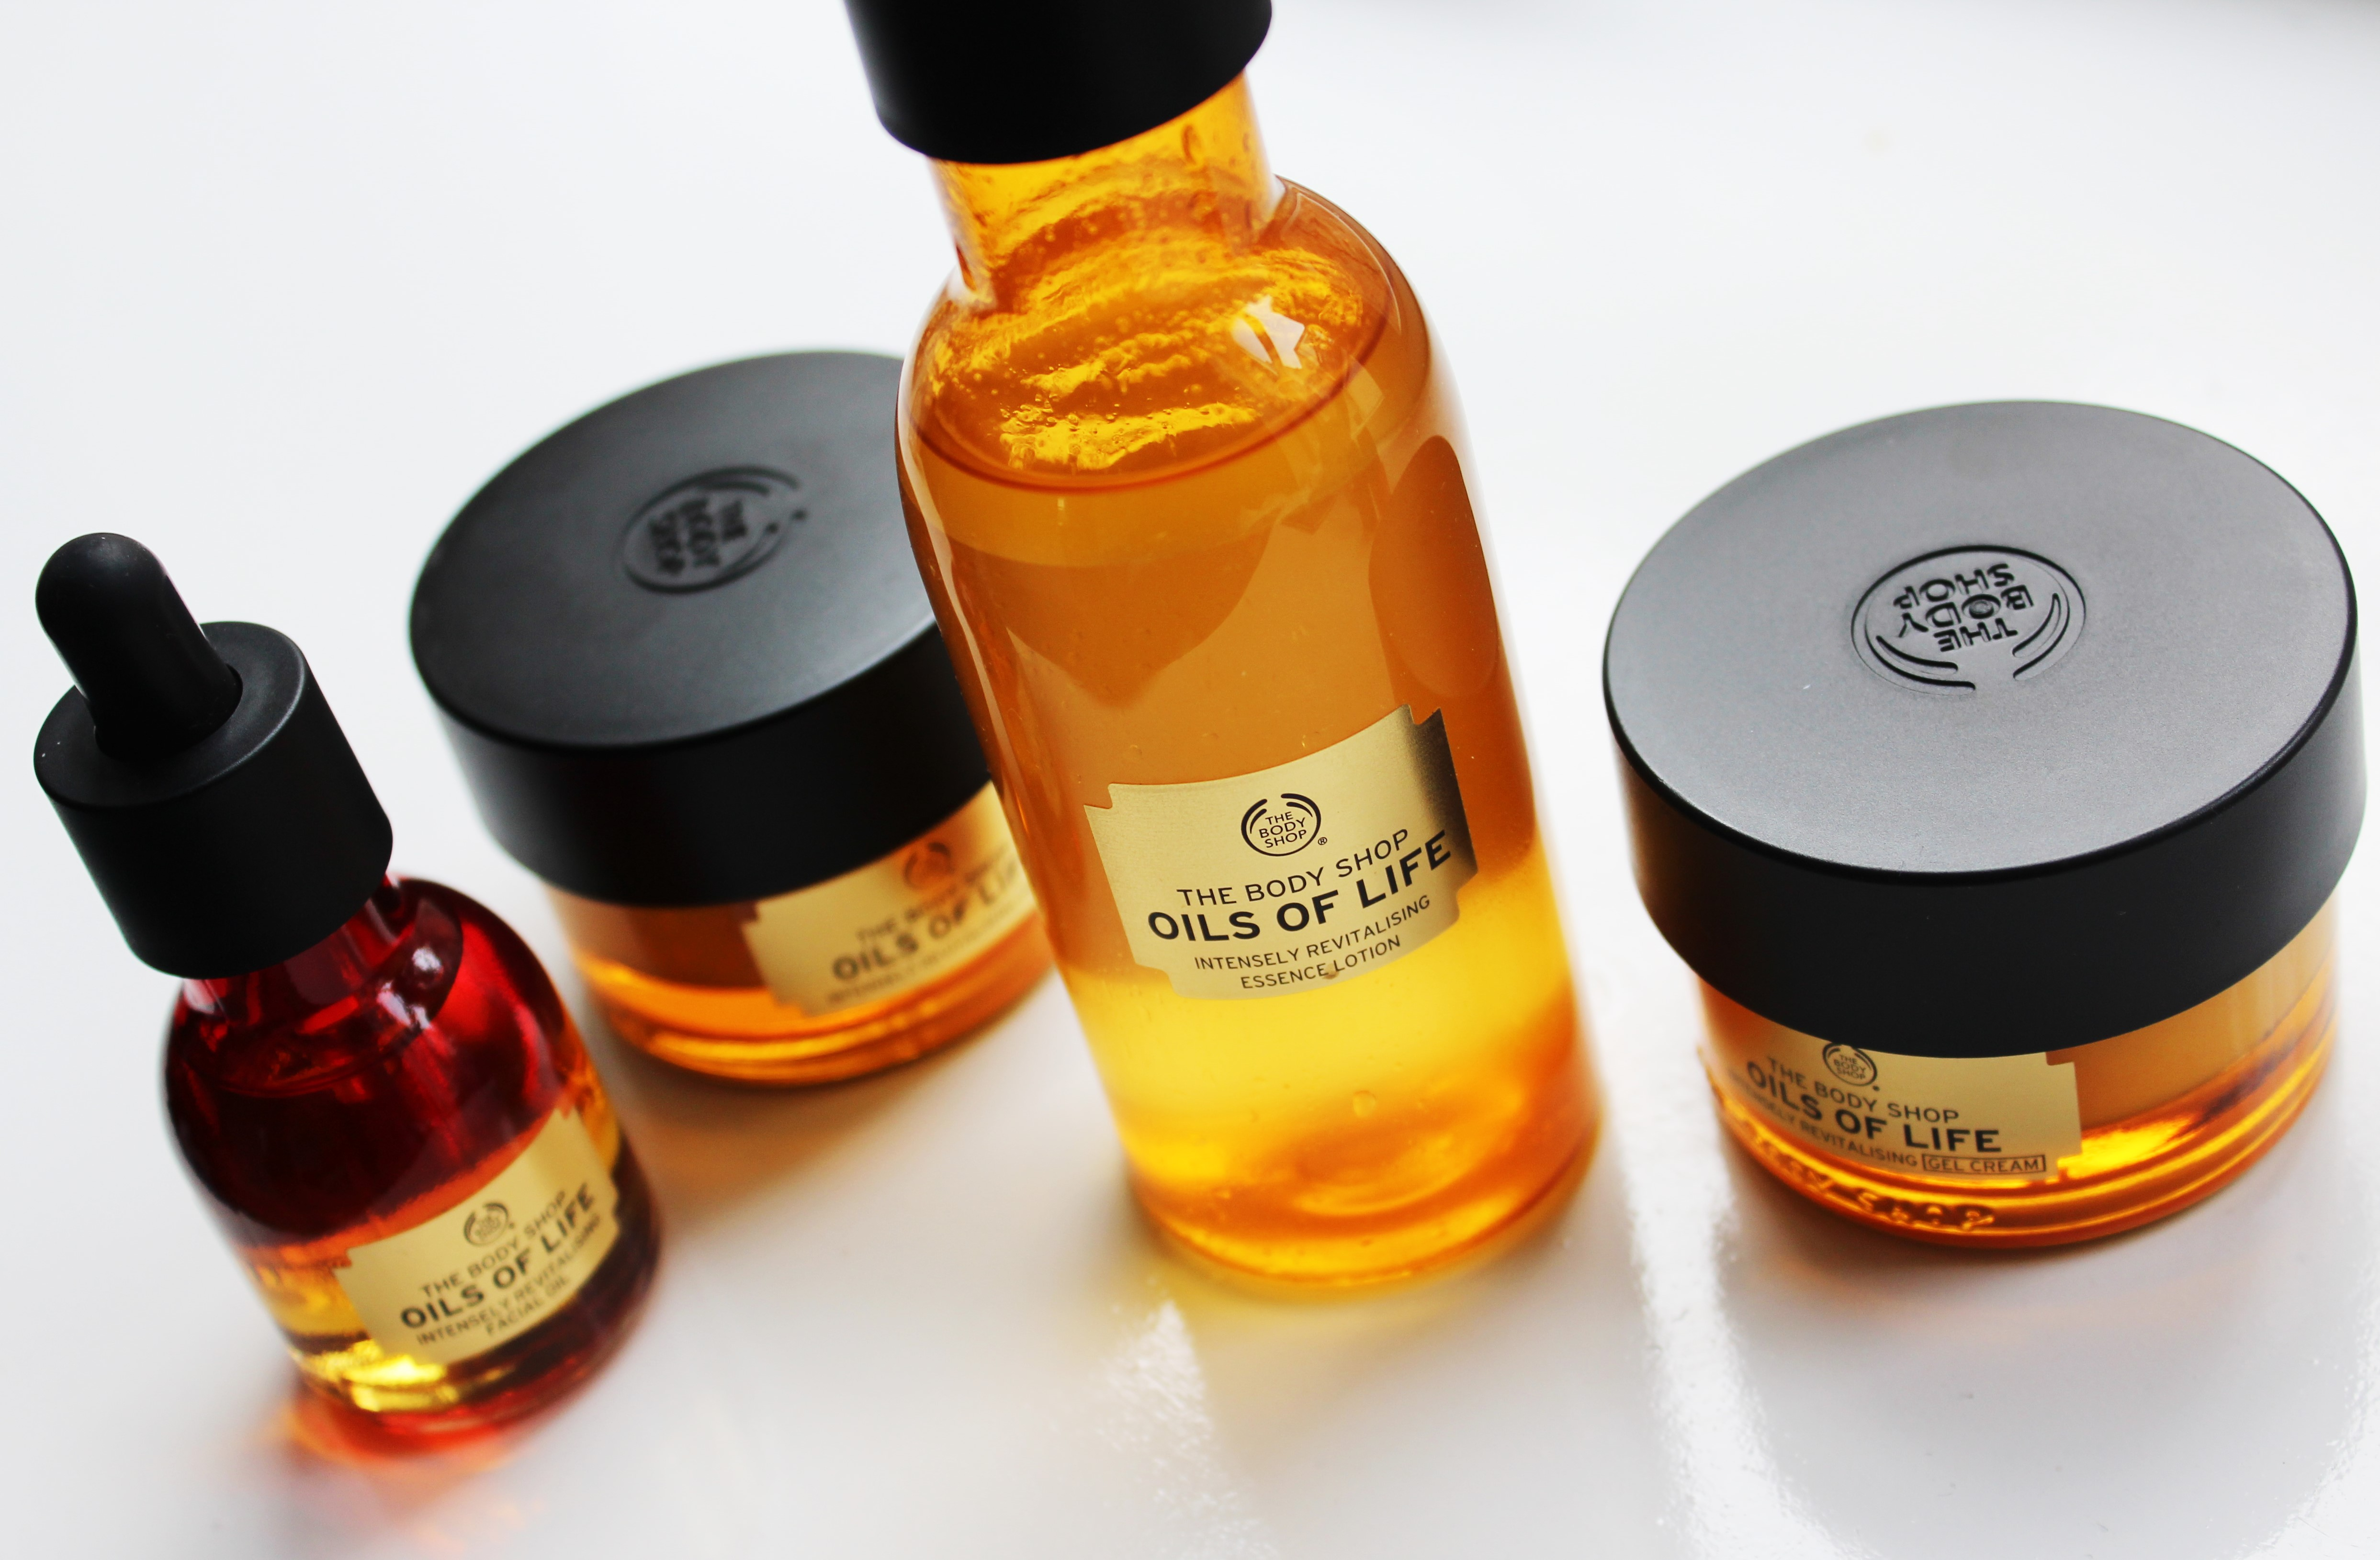 The Body Shop Oils of Life | Review